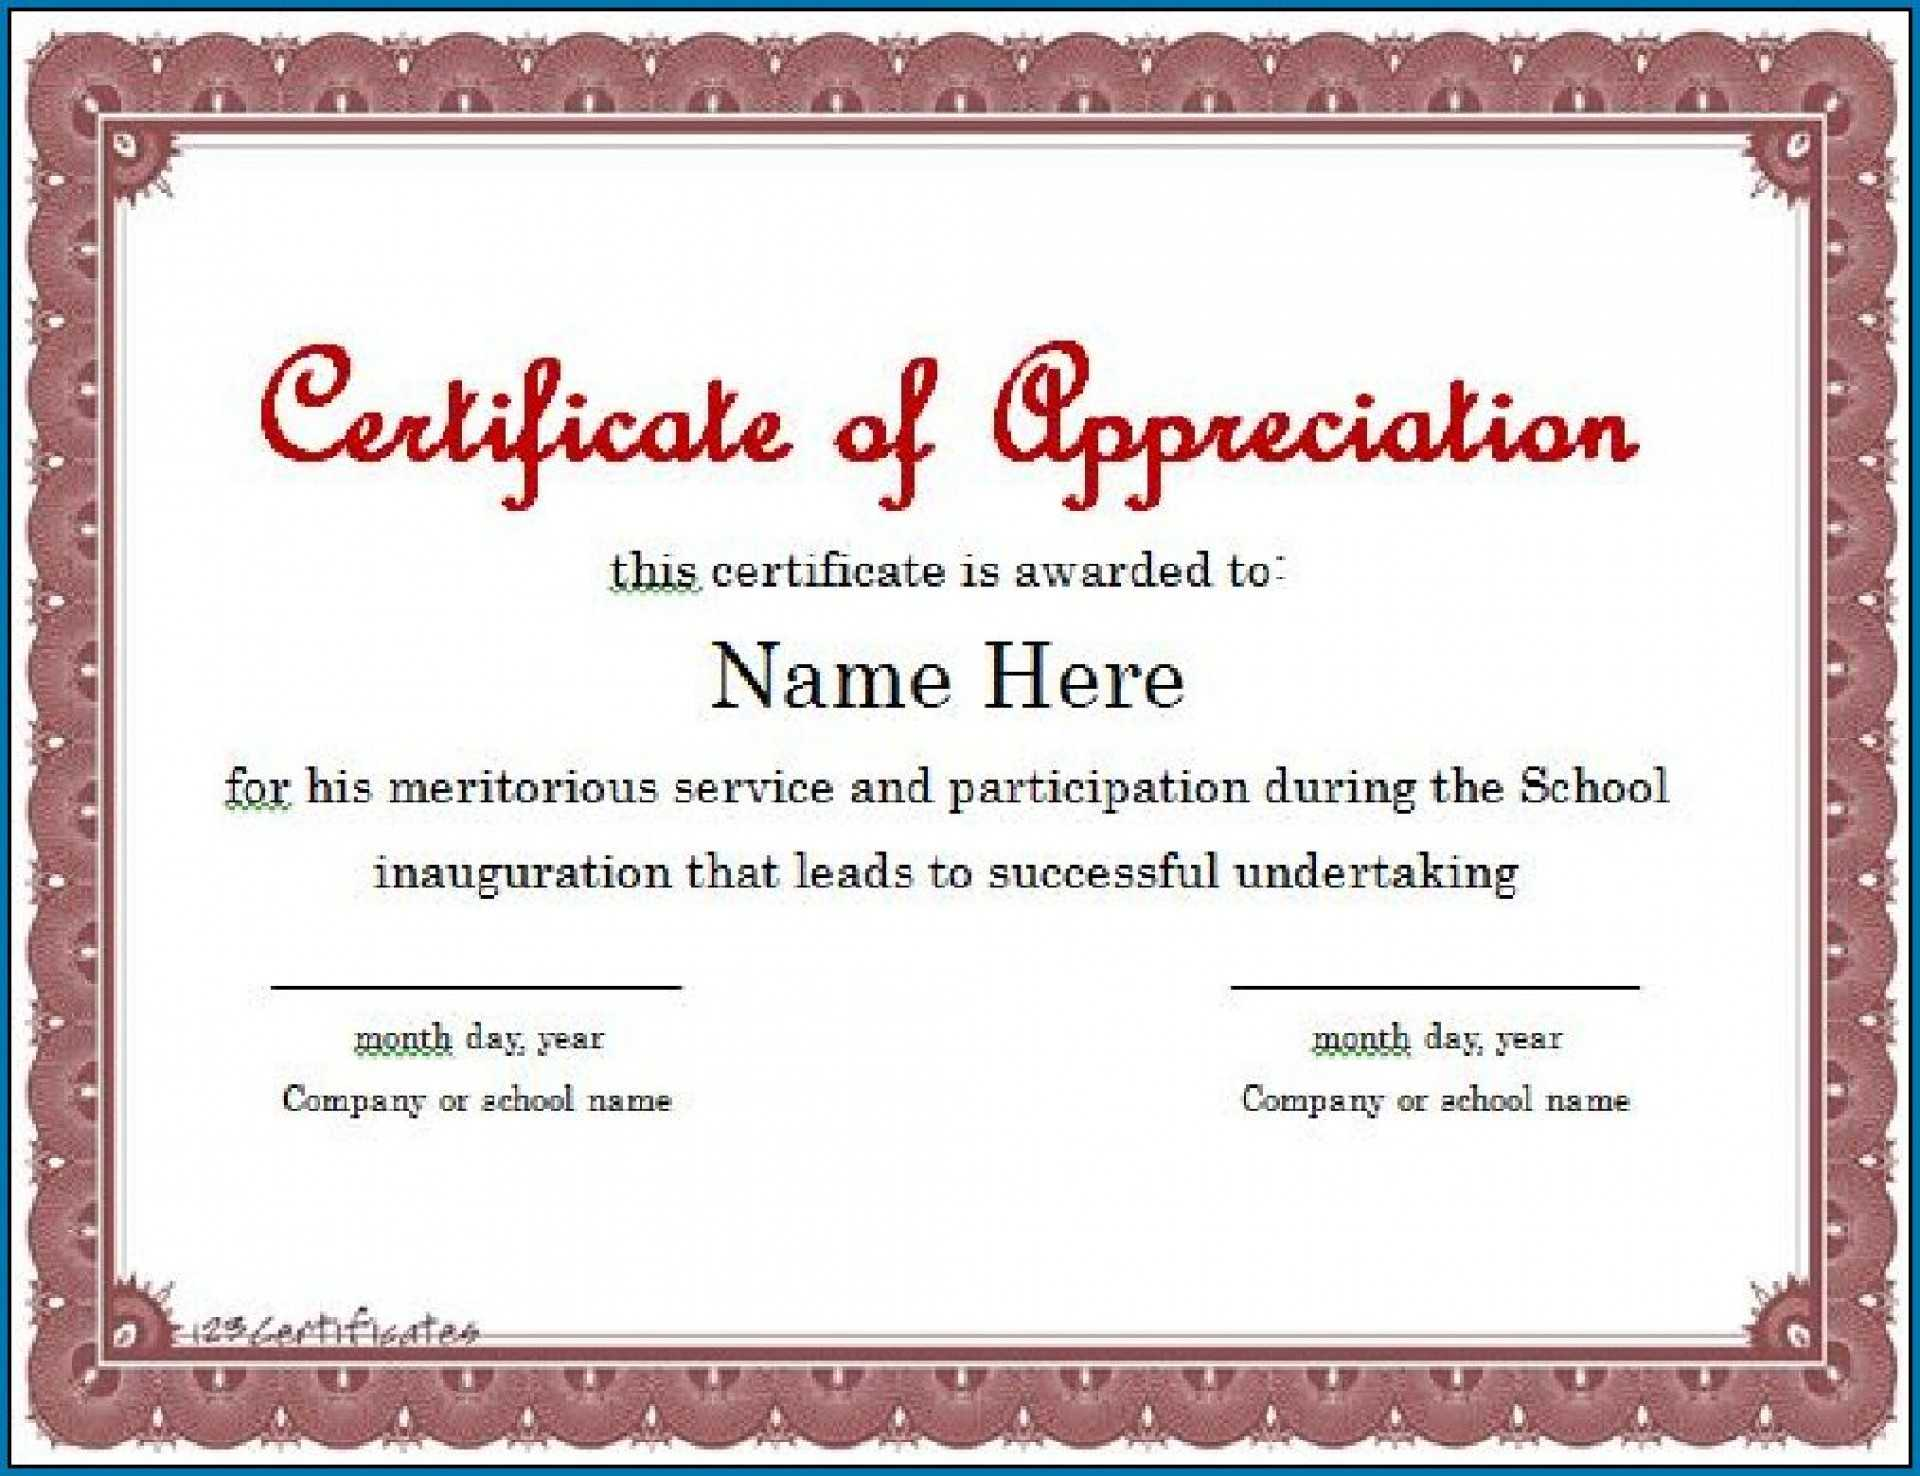 011 Template Ideas Microsoft Word Certificate Of For Template For Certificate Of Appreciation In Microsoft Word